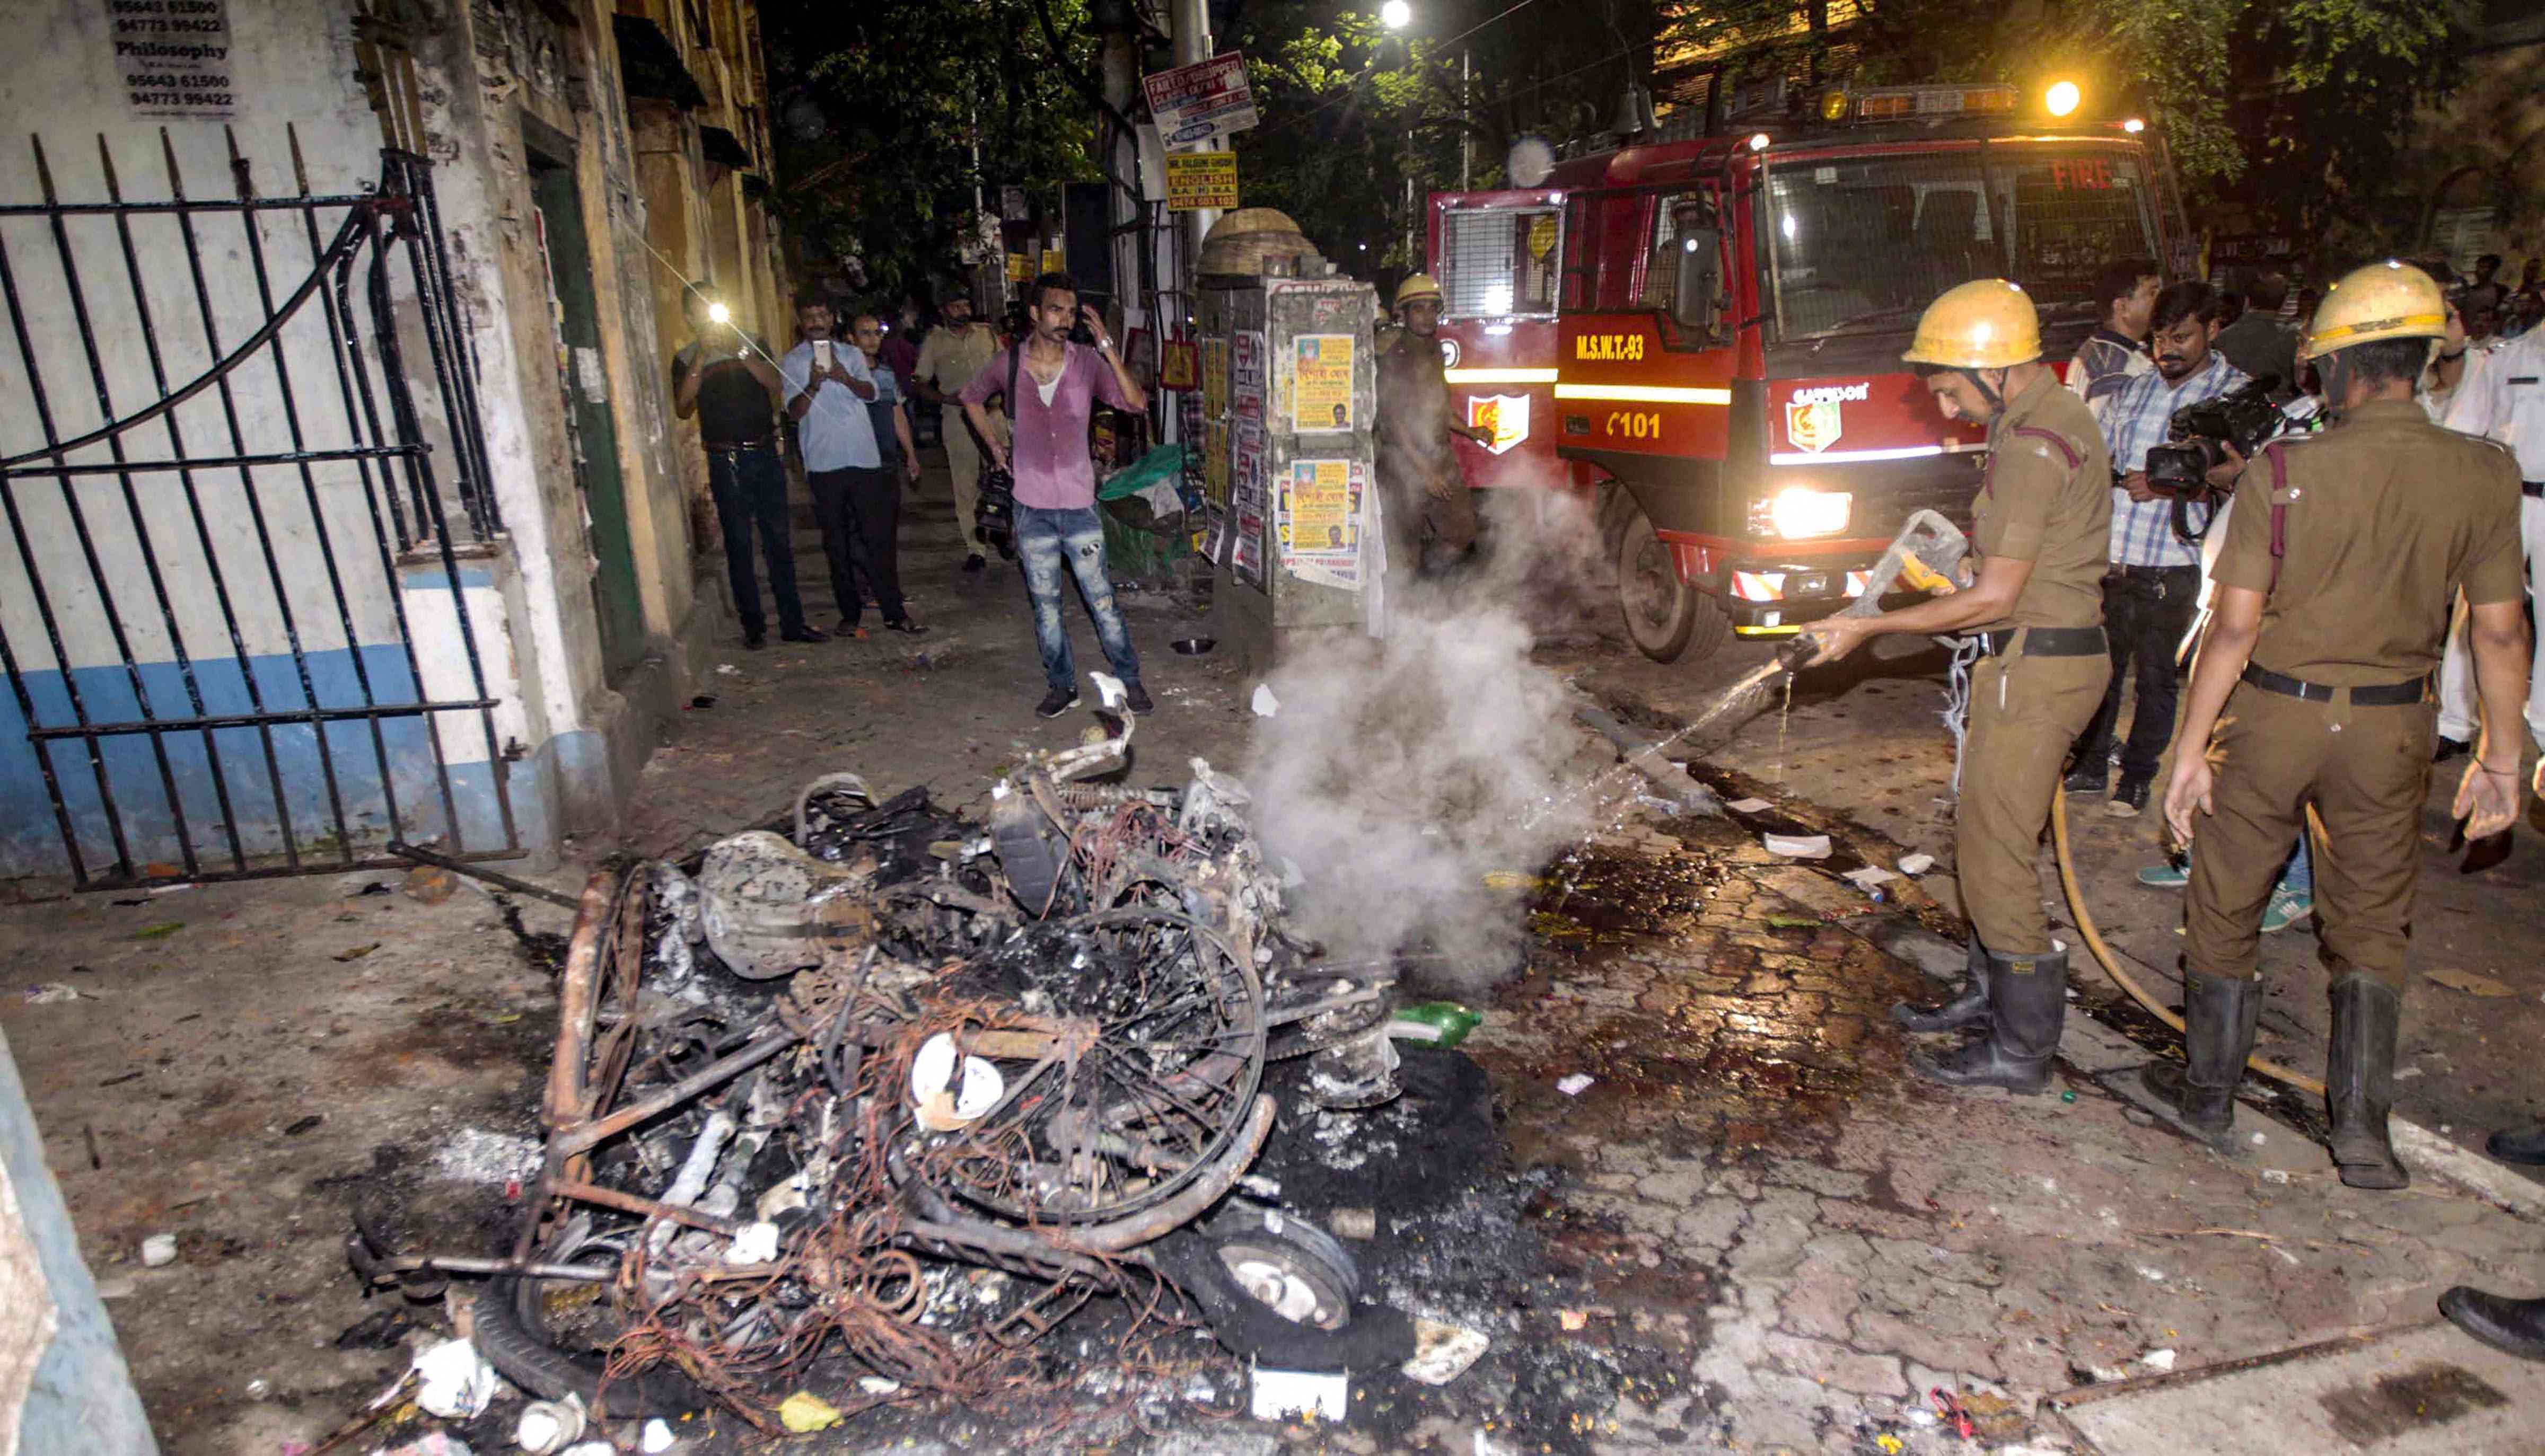 Firefighters douse vehicles set afire by BJP supporters in Kolkata on May 14. Credit: PTI